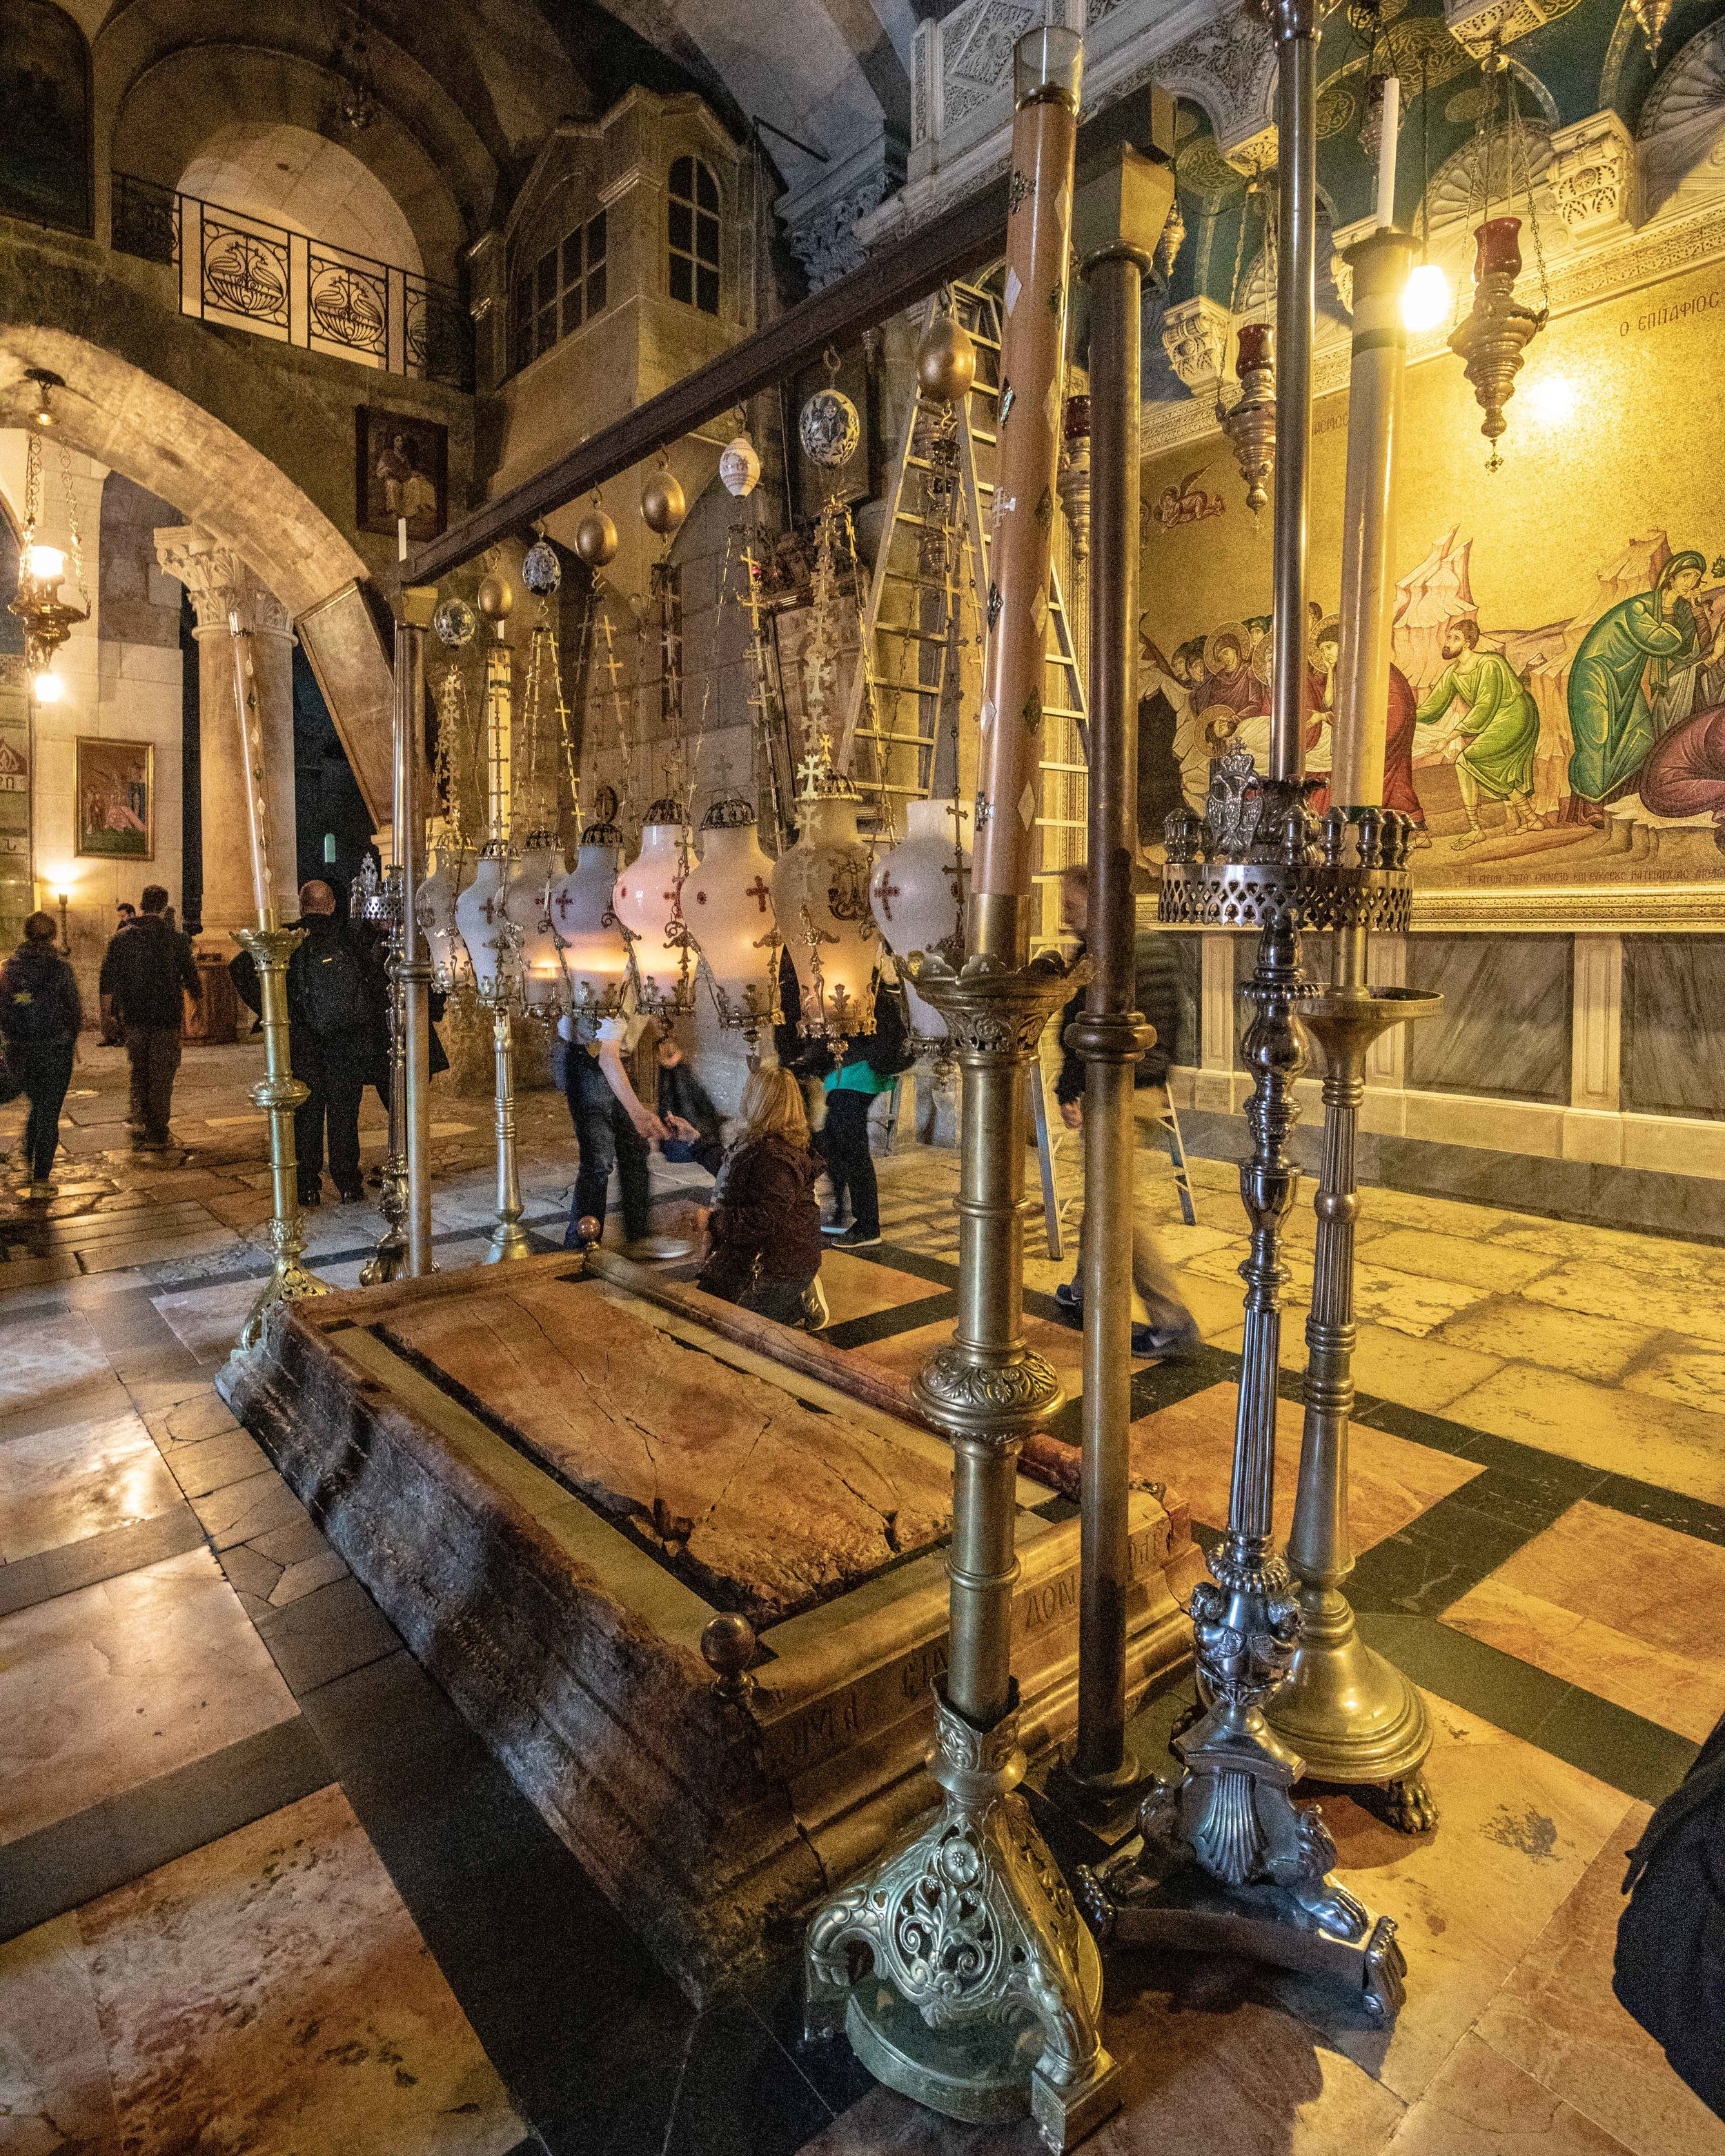 Stone of Anointing - where Jesus was prepared for burial